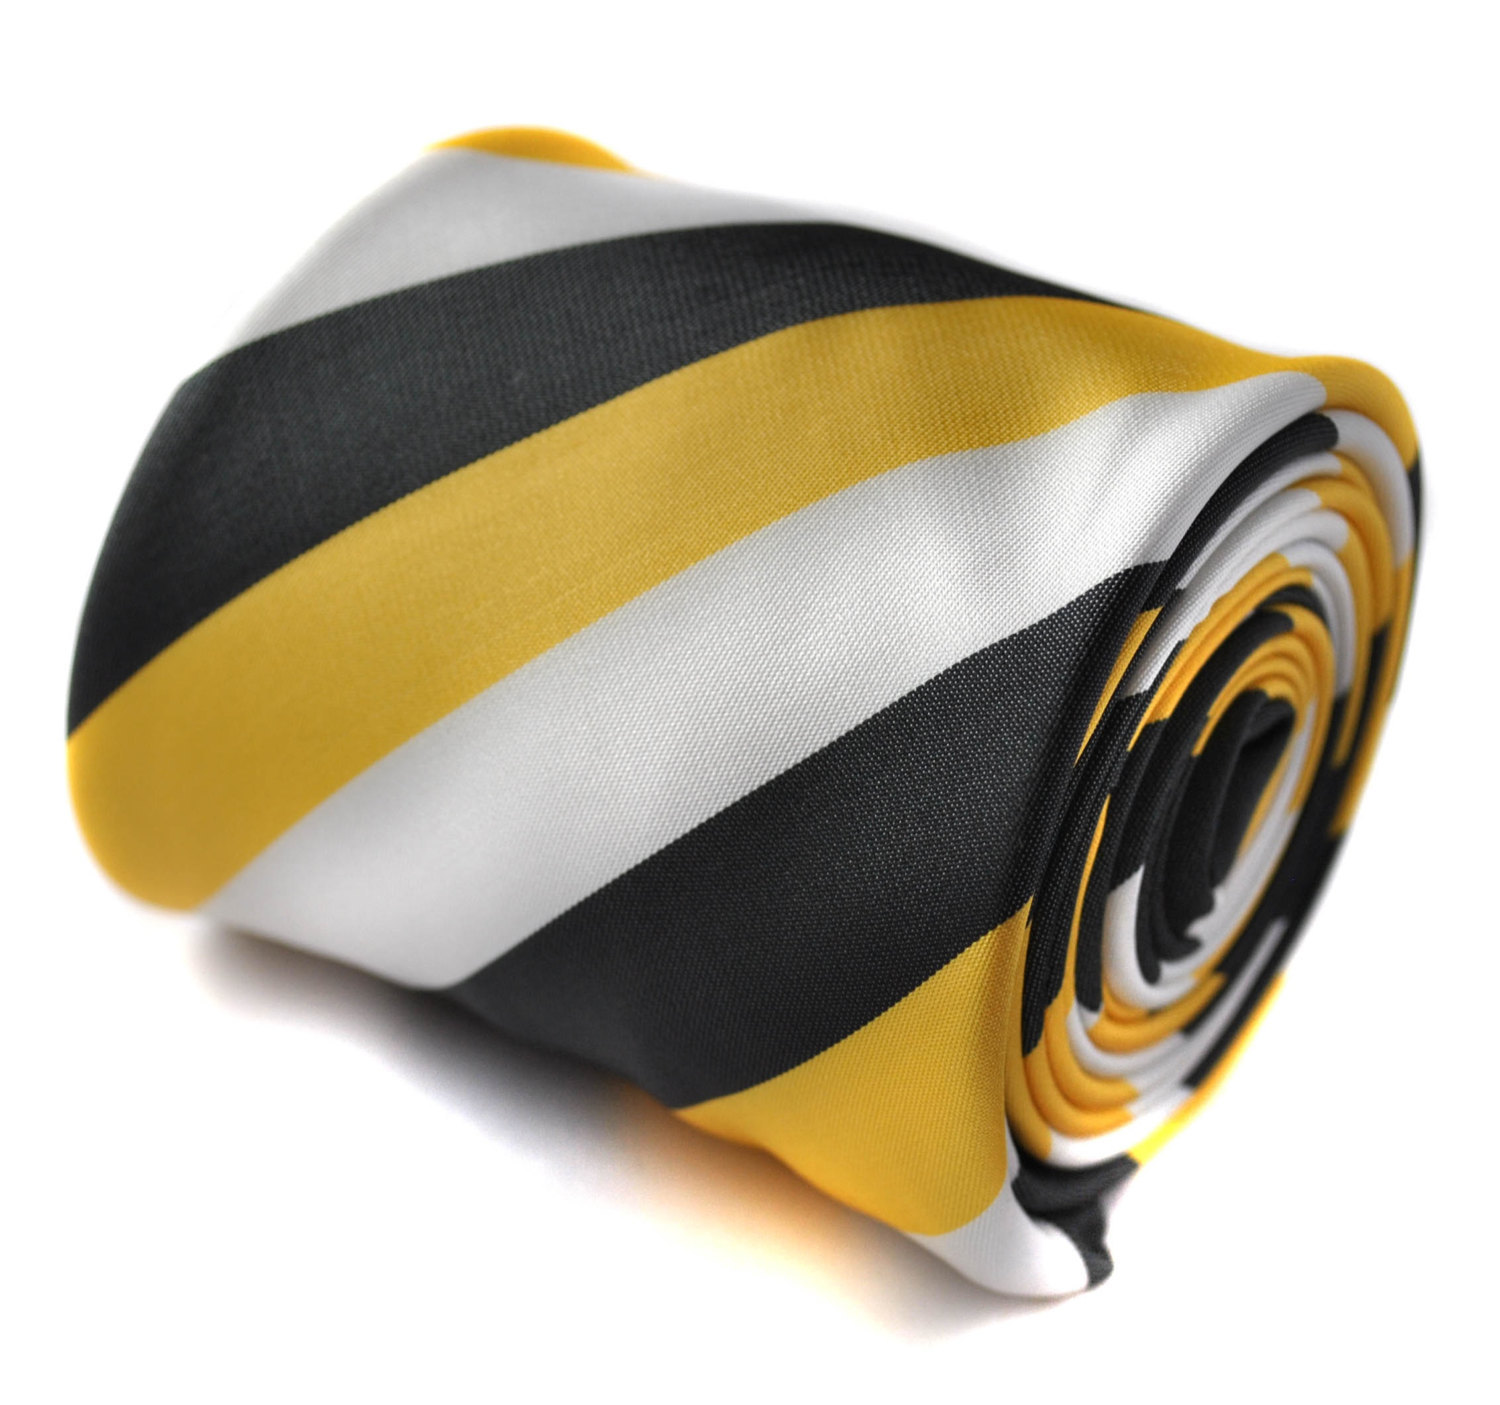 black, yellow and white striped tie with signature floral design to the rear by